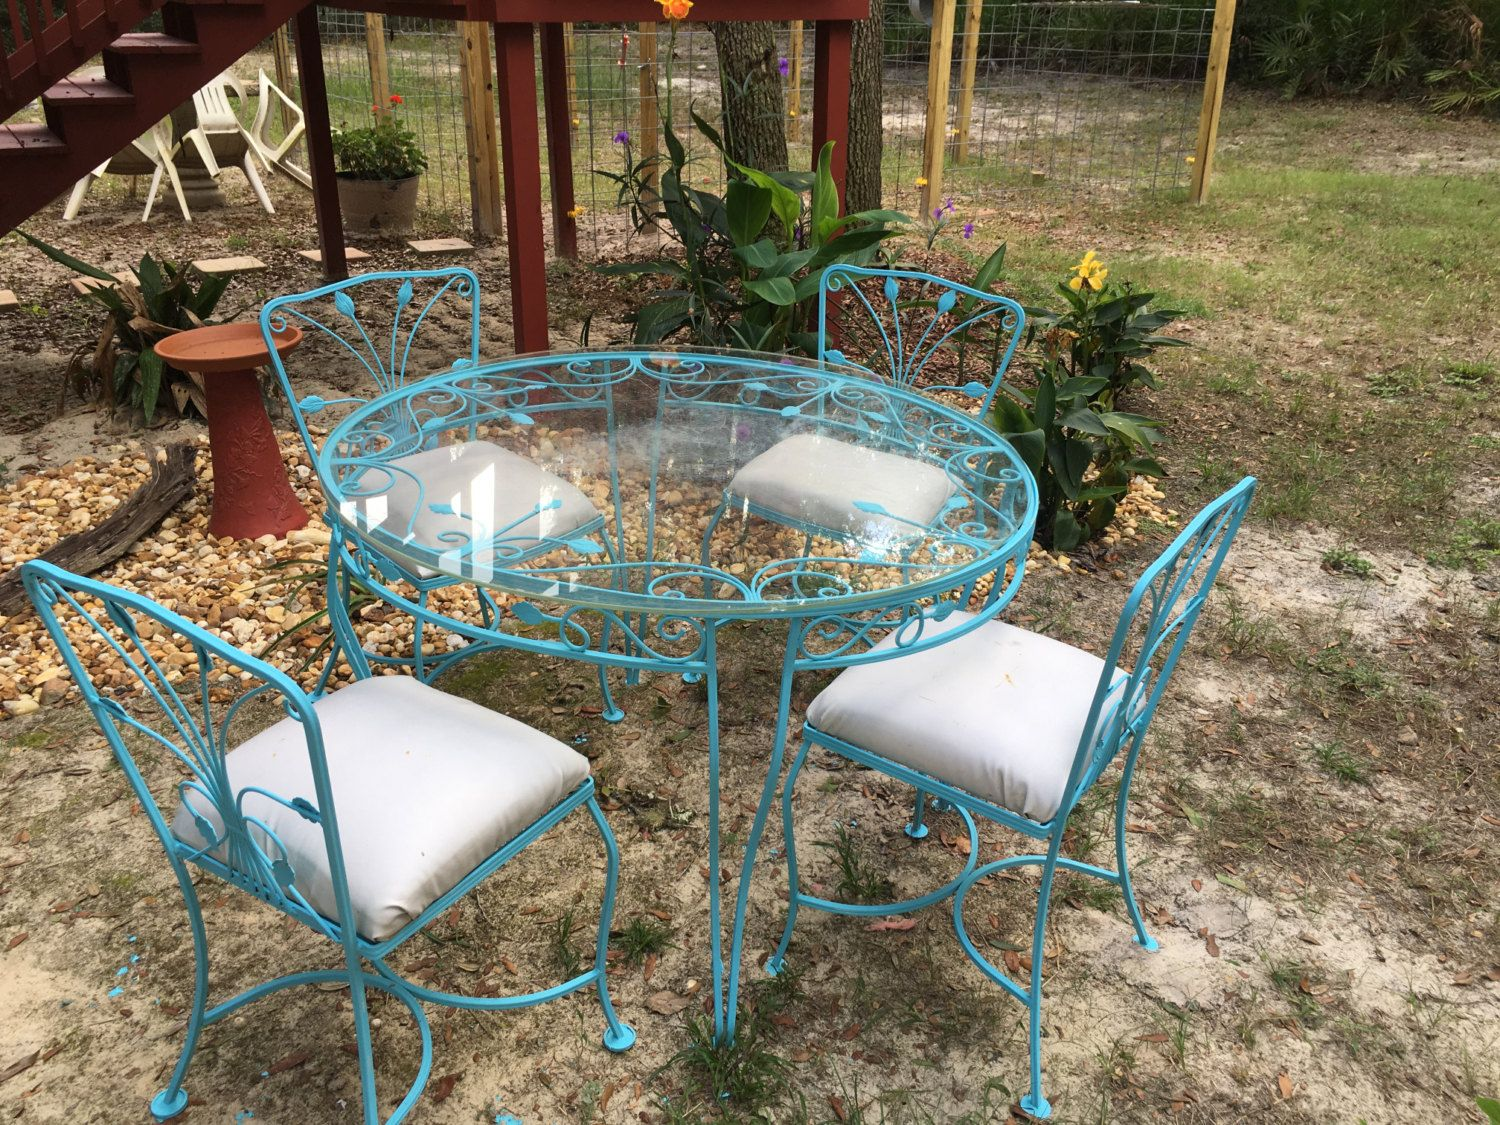 Rod Iron Table Dixie Belle Blue Glass Top By Maggiebleus On Etsy Wrought Iron Table Outdoor Patio Set Outdoor Tables And Chairs